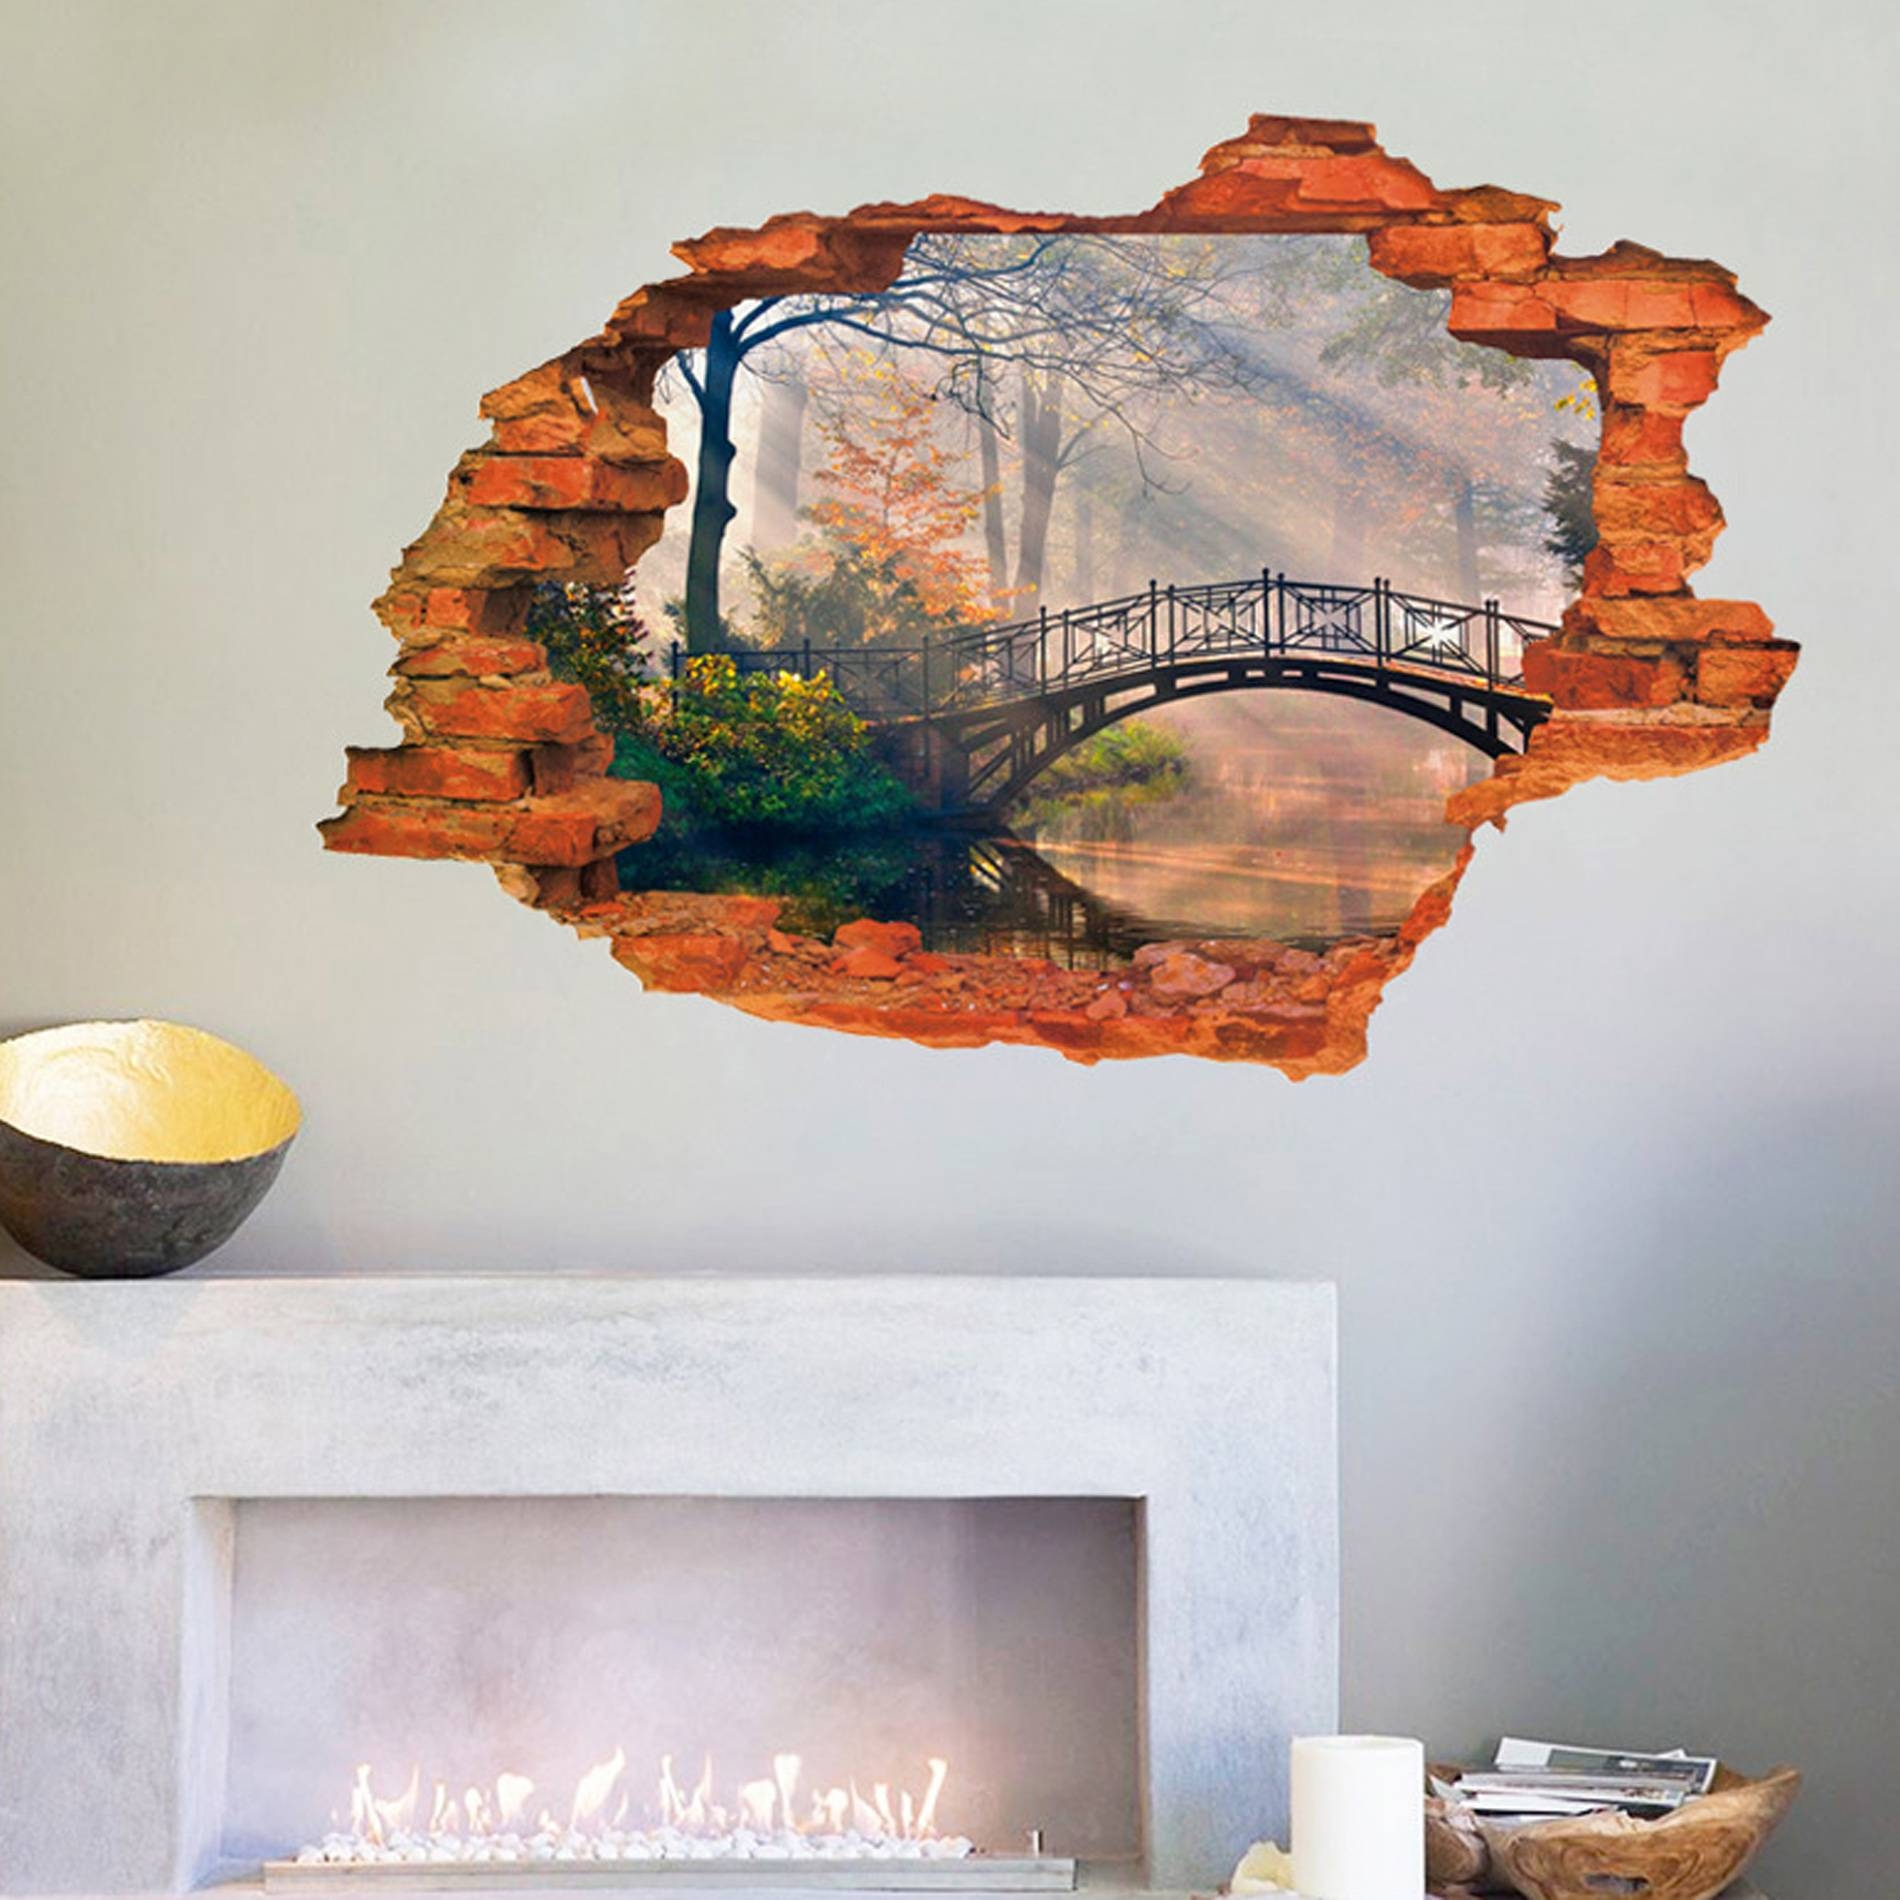 3D Broken Wall Removable Wall Sticker Art Decal Living Room Decor Throughout Latest 3D Wall Art For Living Room (View 2 of 20)